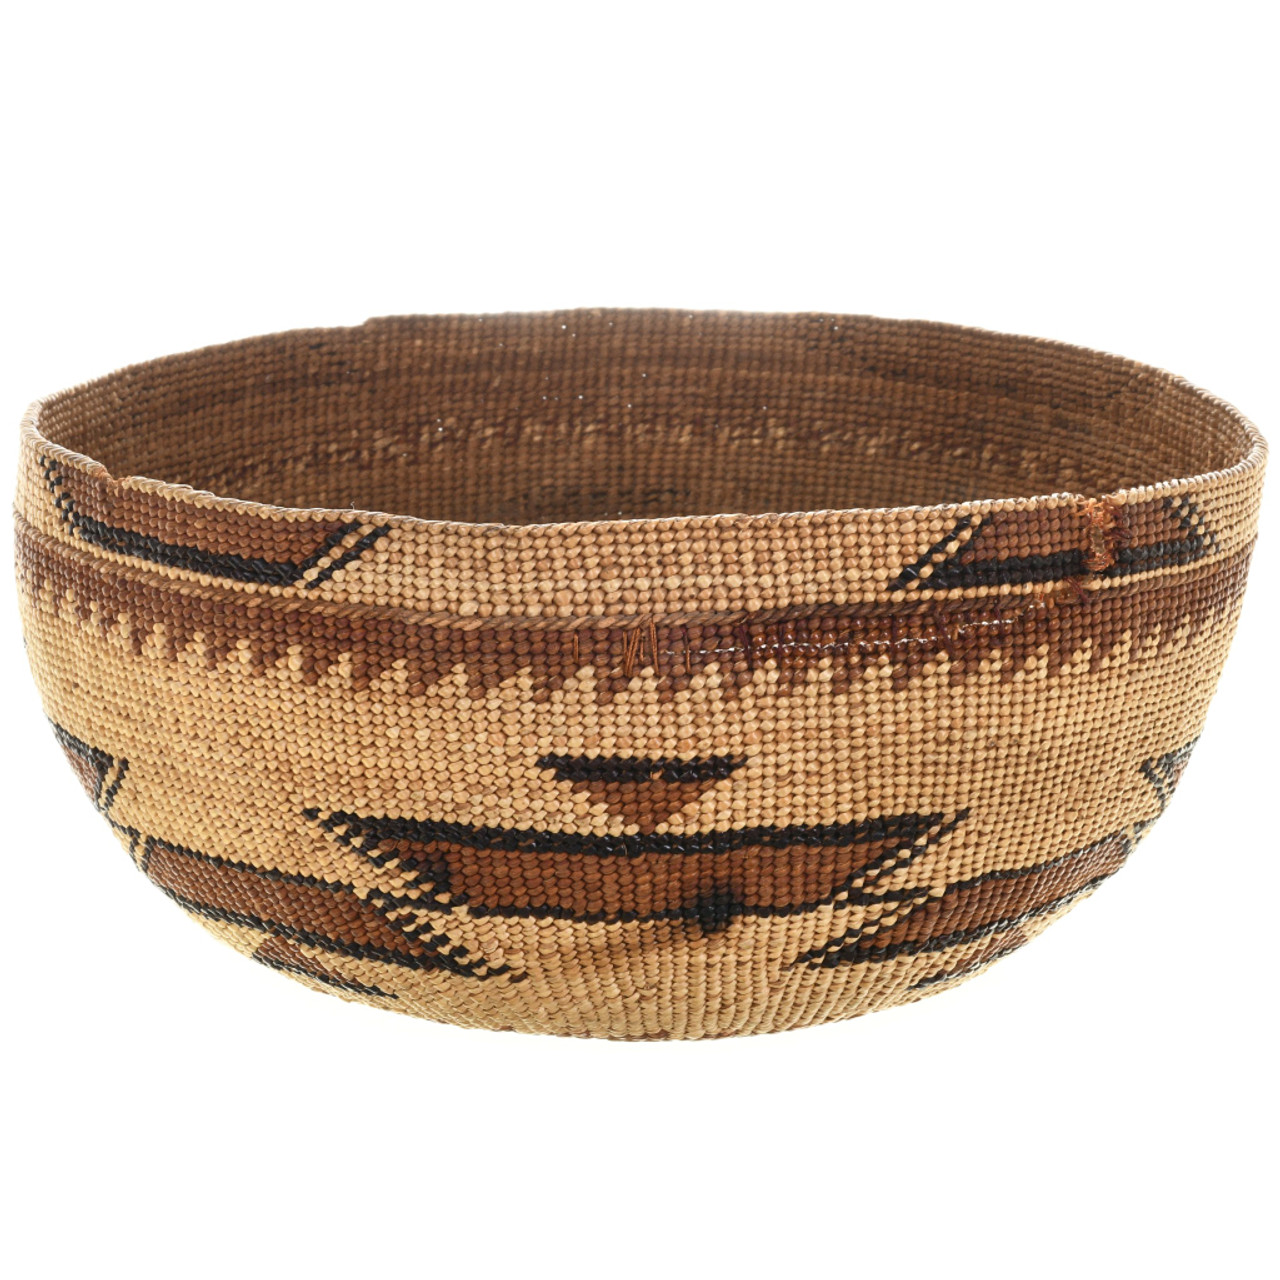 95fedd80702 SALE. Old Hupa Indian Basket 32040